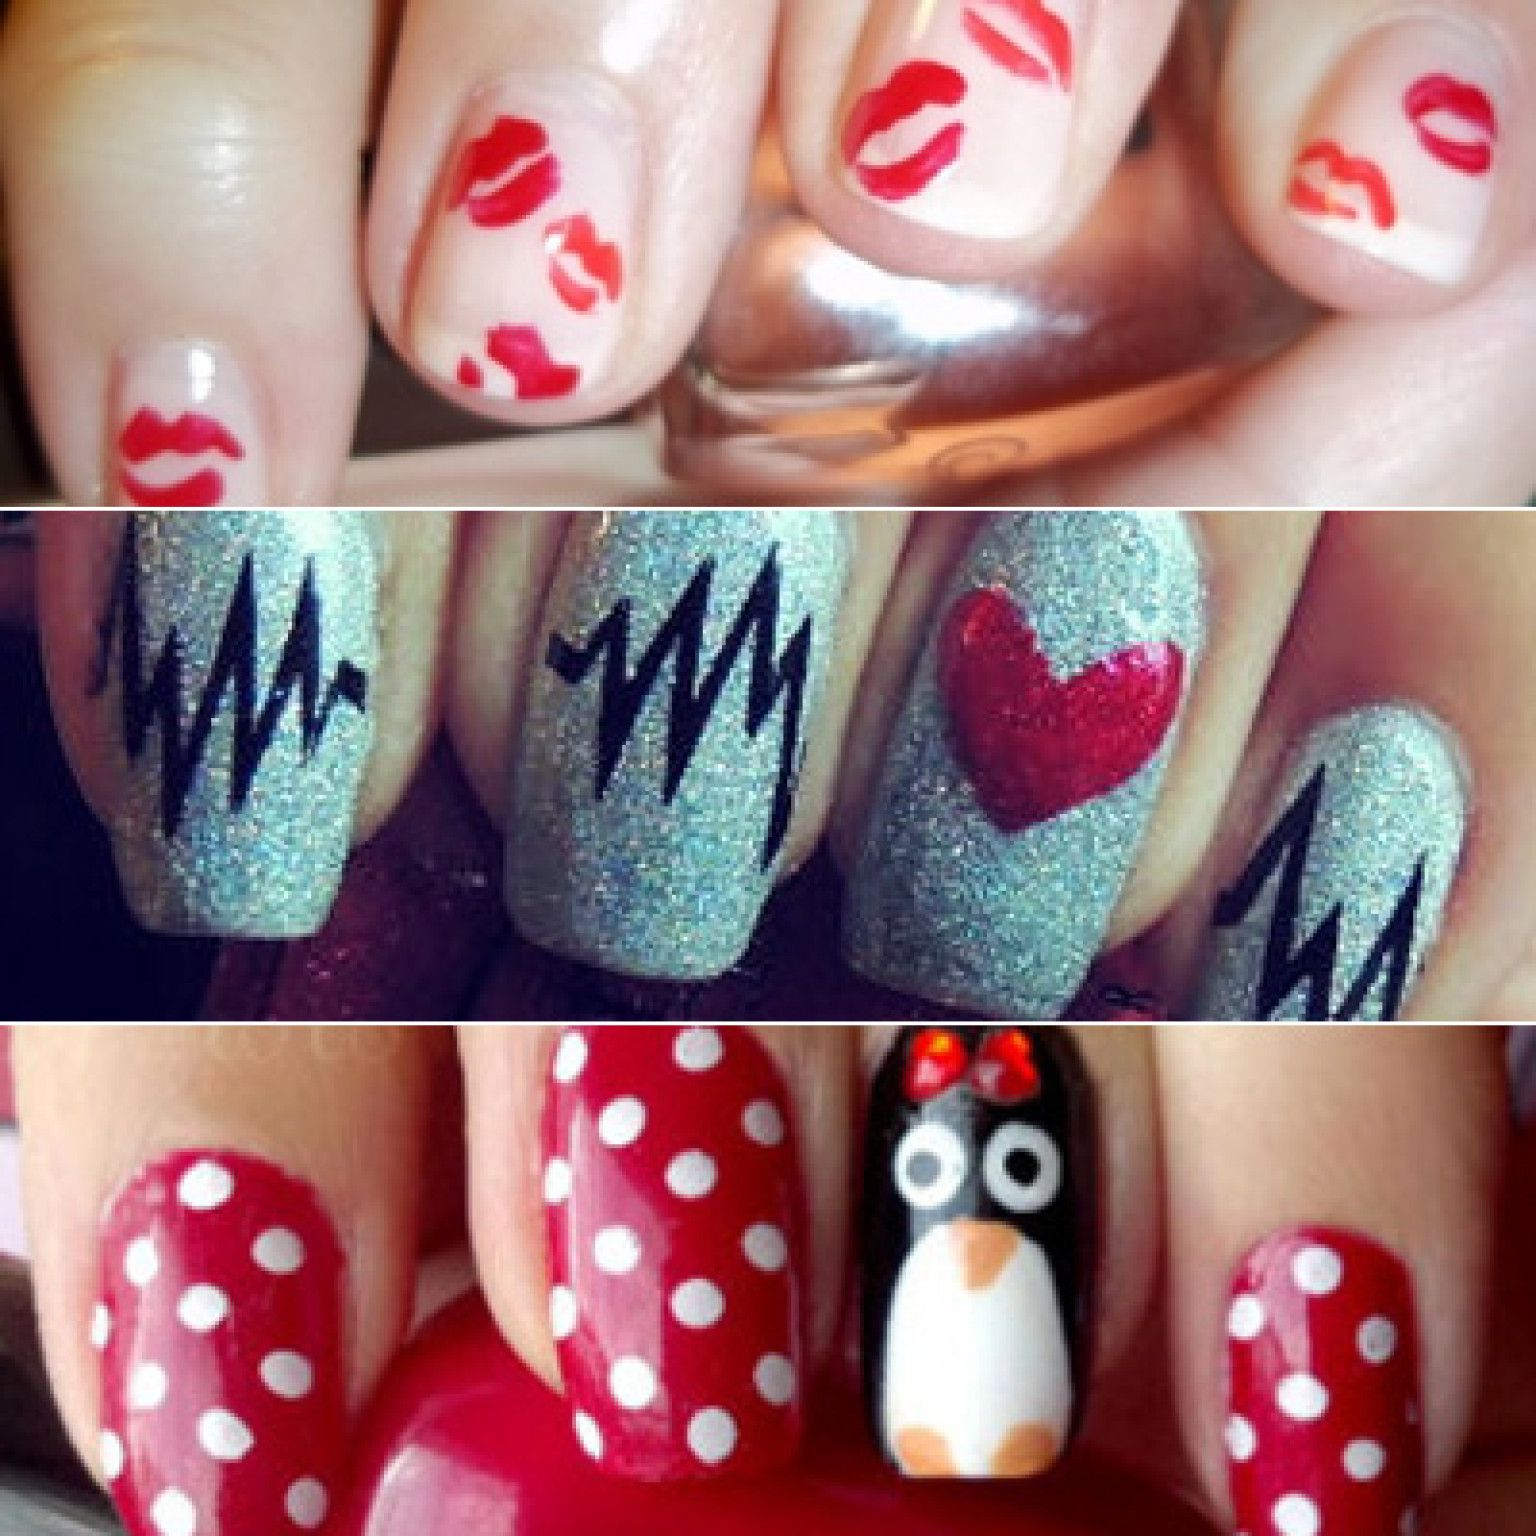 28 valentine's day nail art ideas to put you in the mood for love